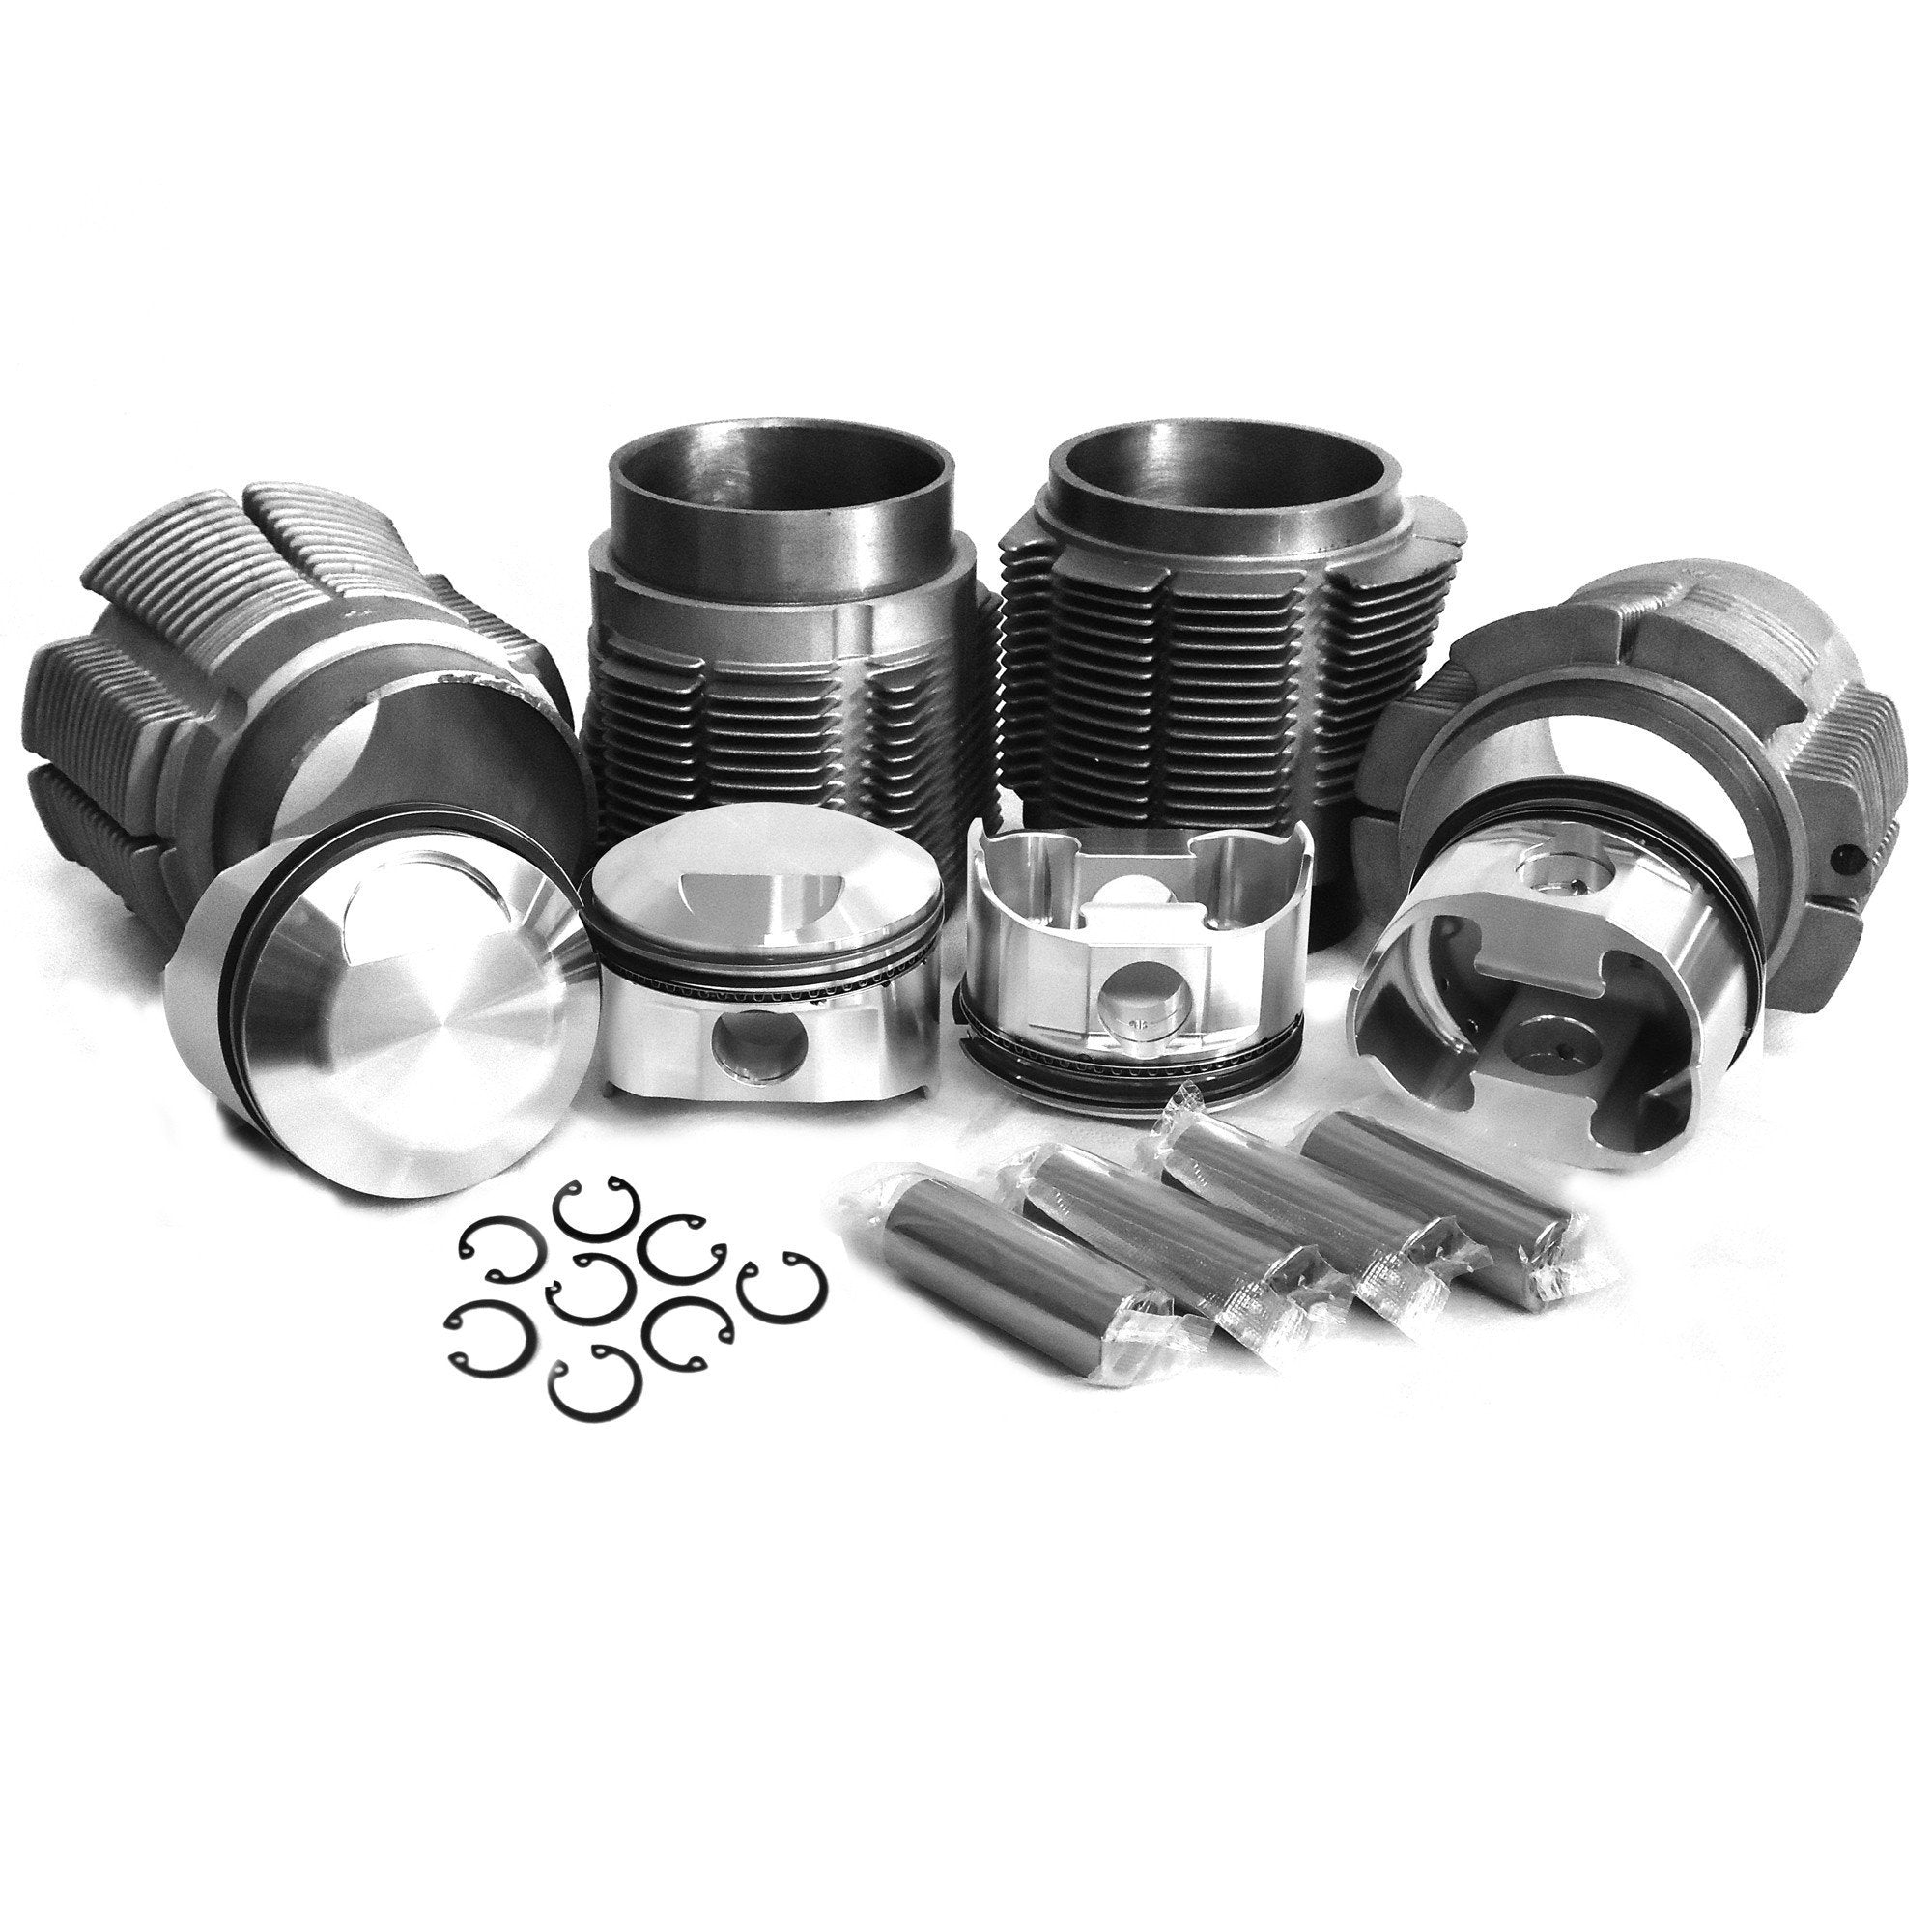 From 356 400: 83.5mm Porsche 356/912 Big Bore Kit W/ Biral Cylinders